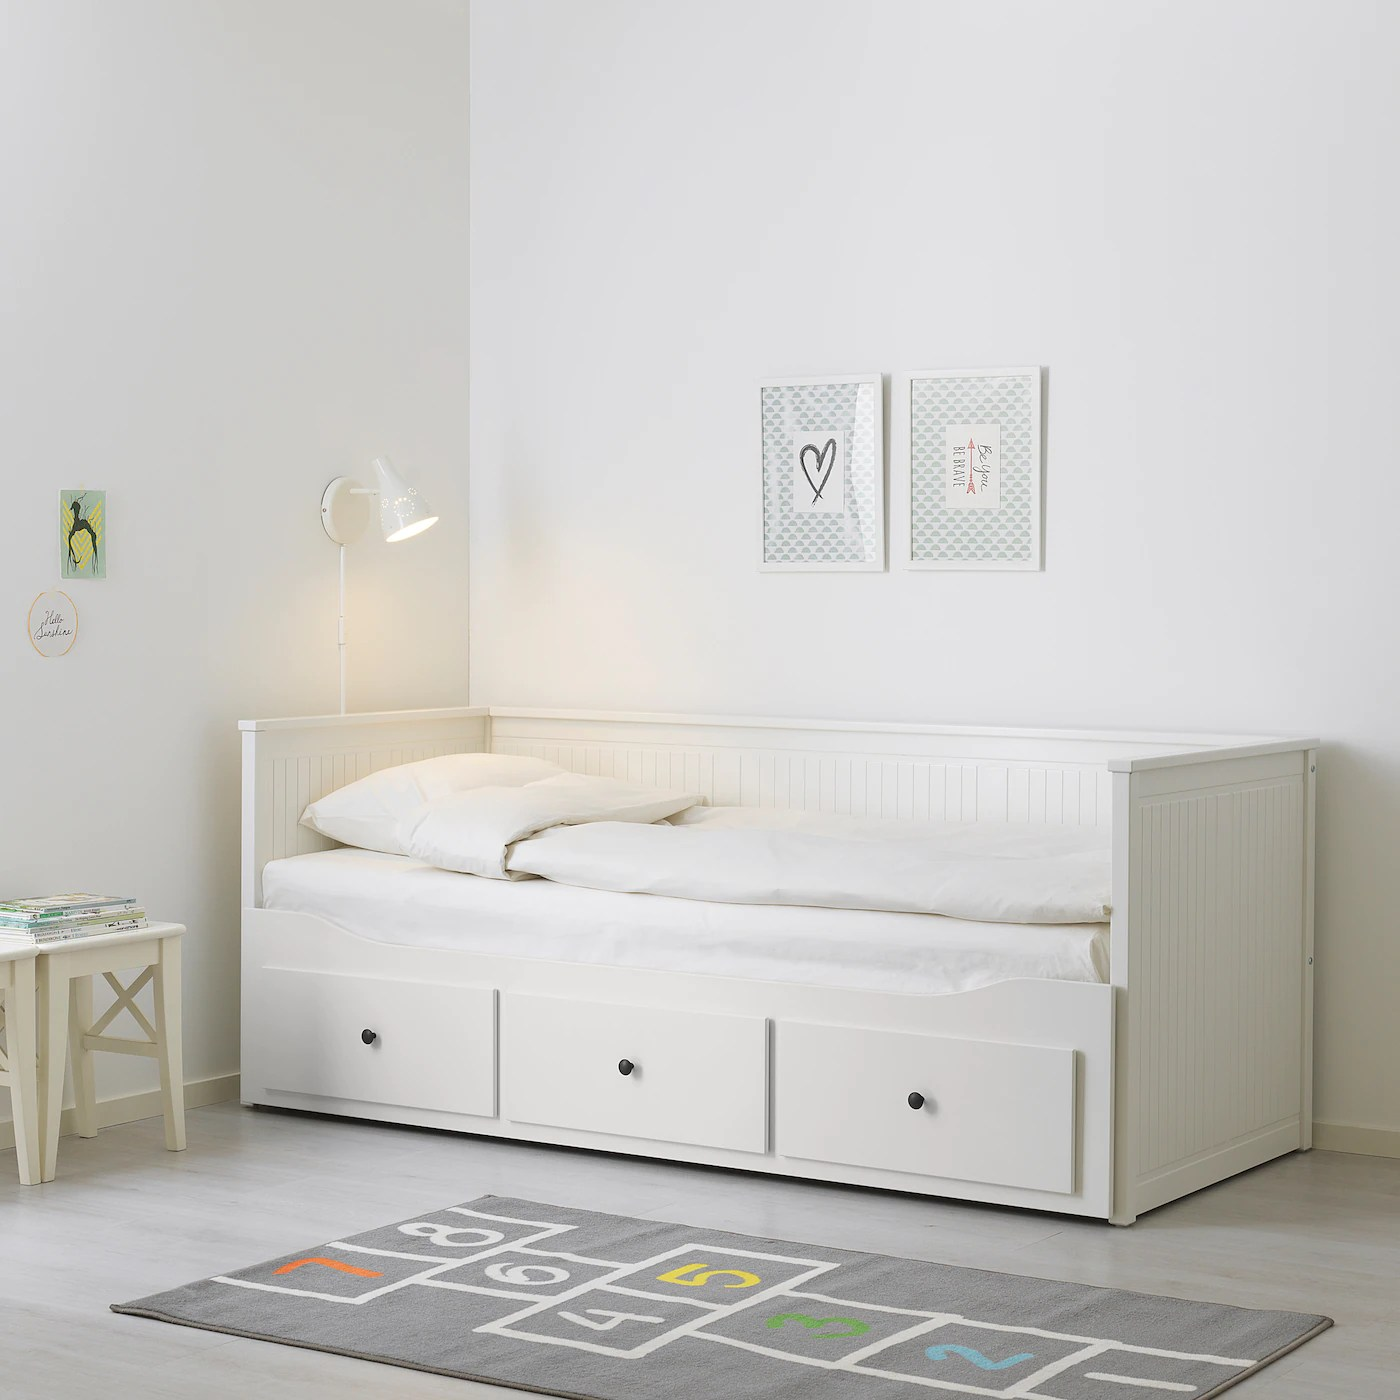 hemnes day bed frame with 3 drawers white 80x200 cm